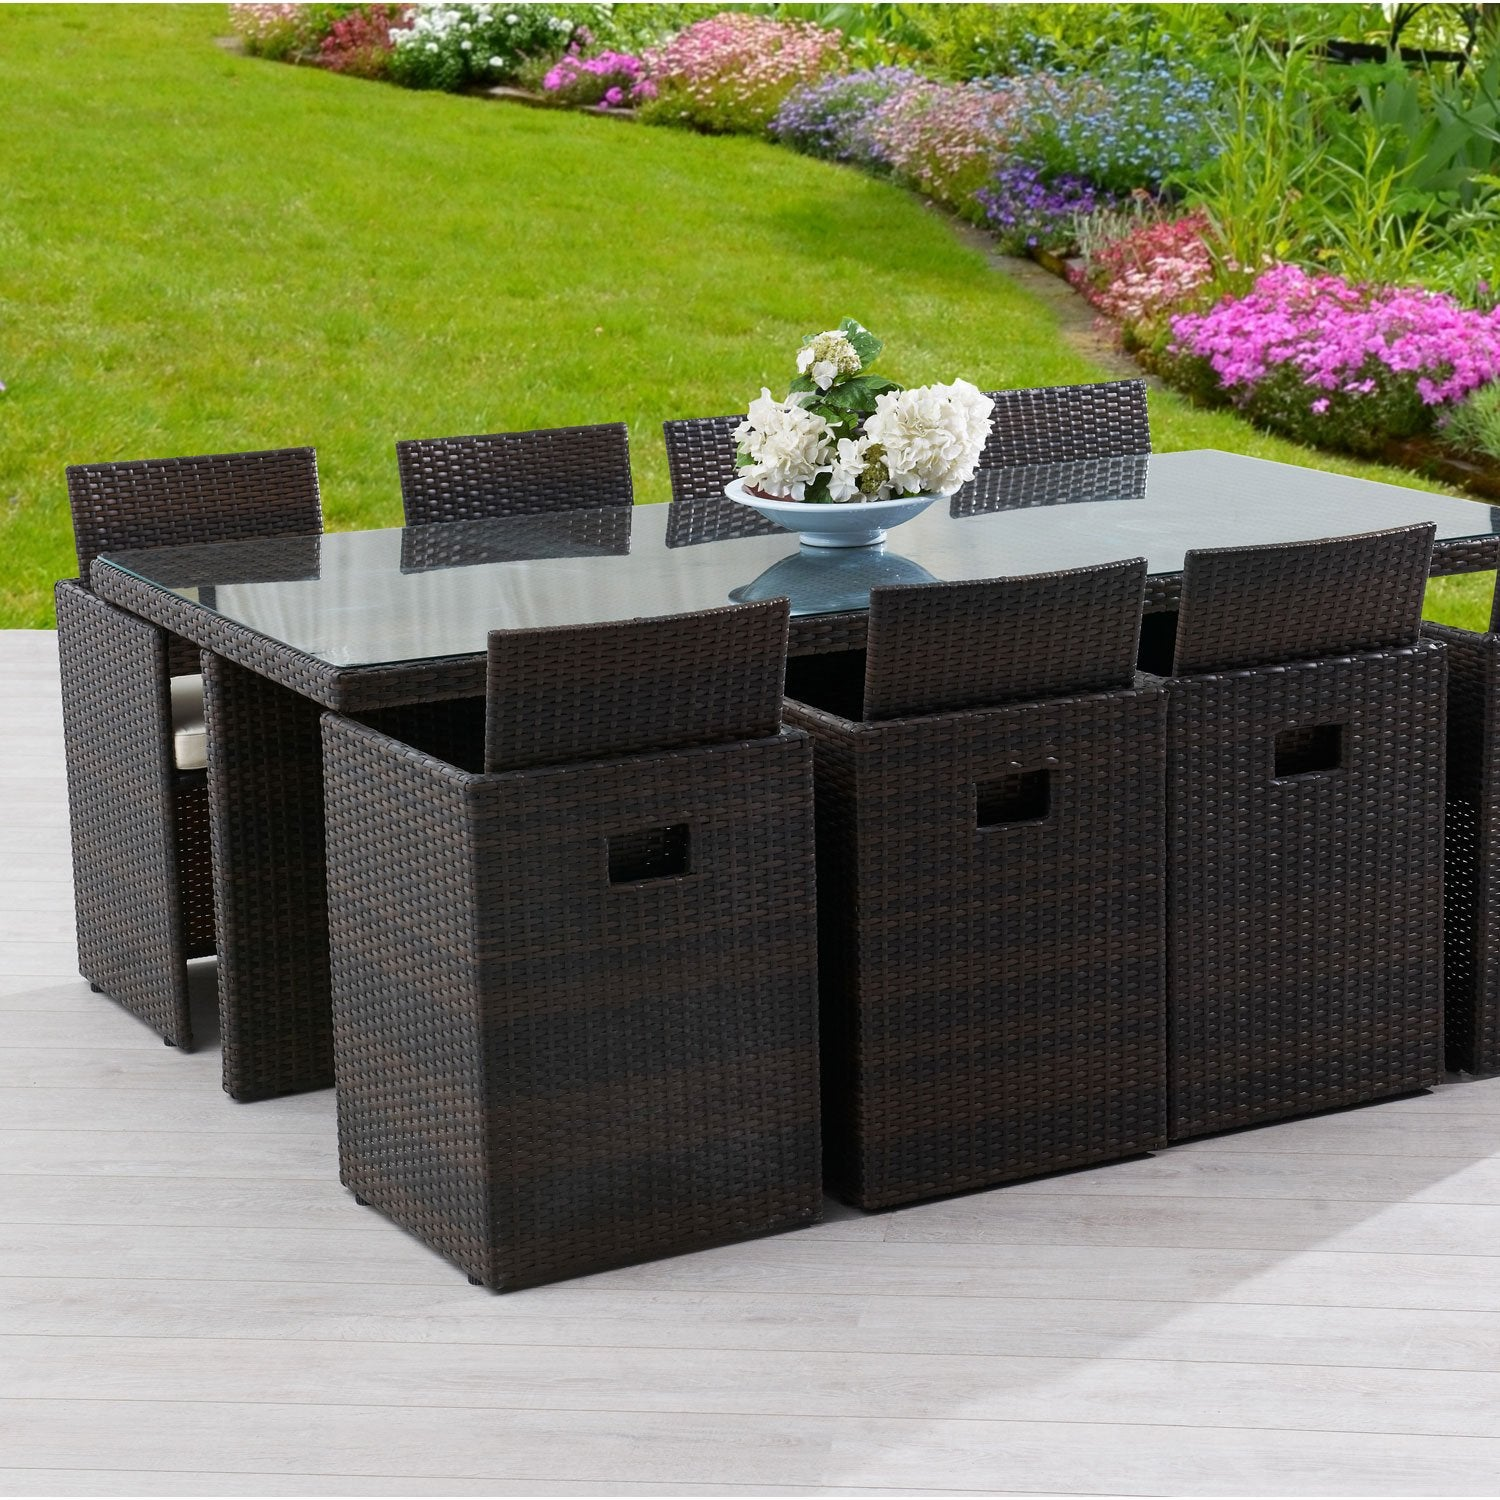 Salon de jardin encastrable r sine tress e marron 1 table for Table de jardin resine pas cher